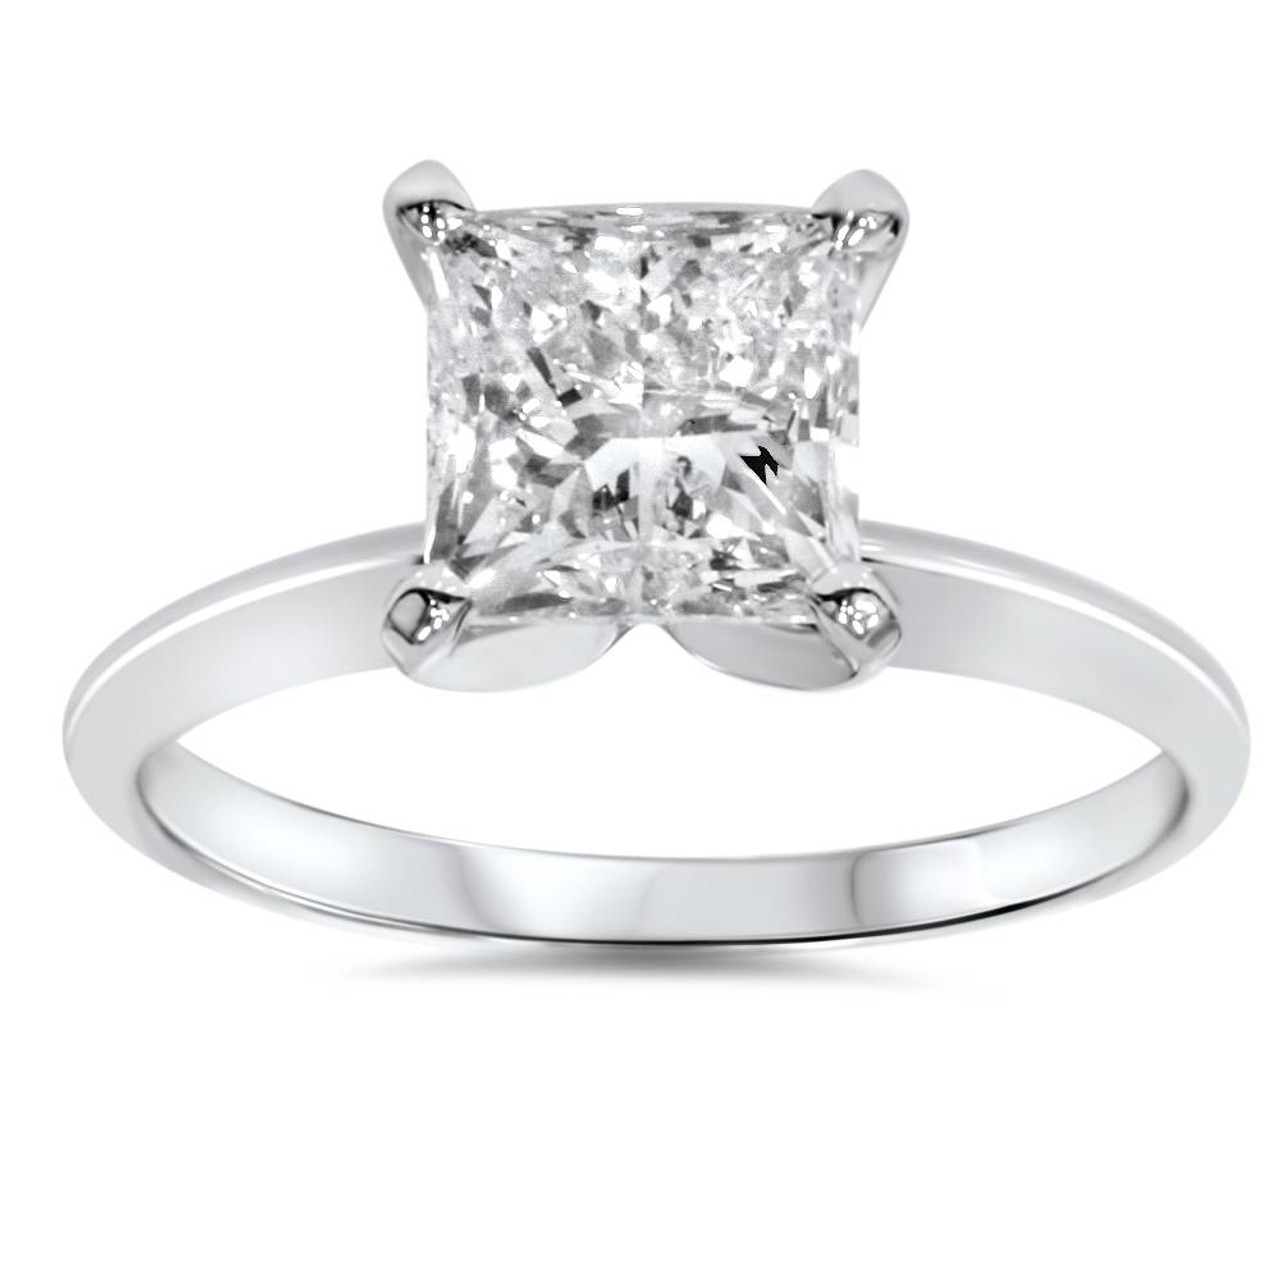 2ct Princess Cut Diamond Cluster Solitaire Engagement Ring 14ct White Gold Over